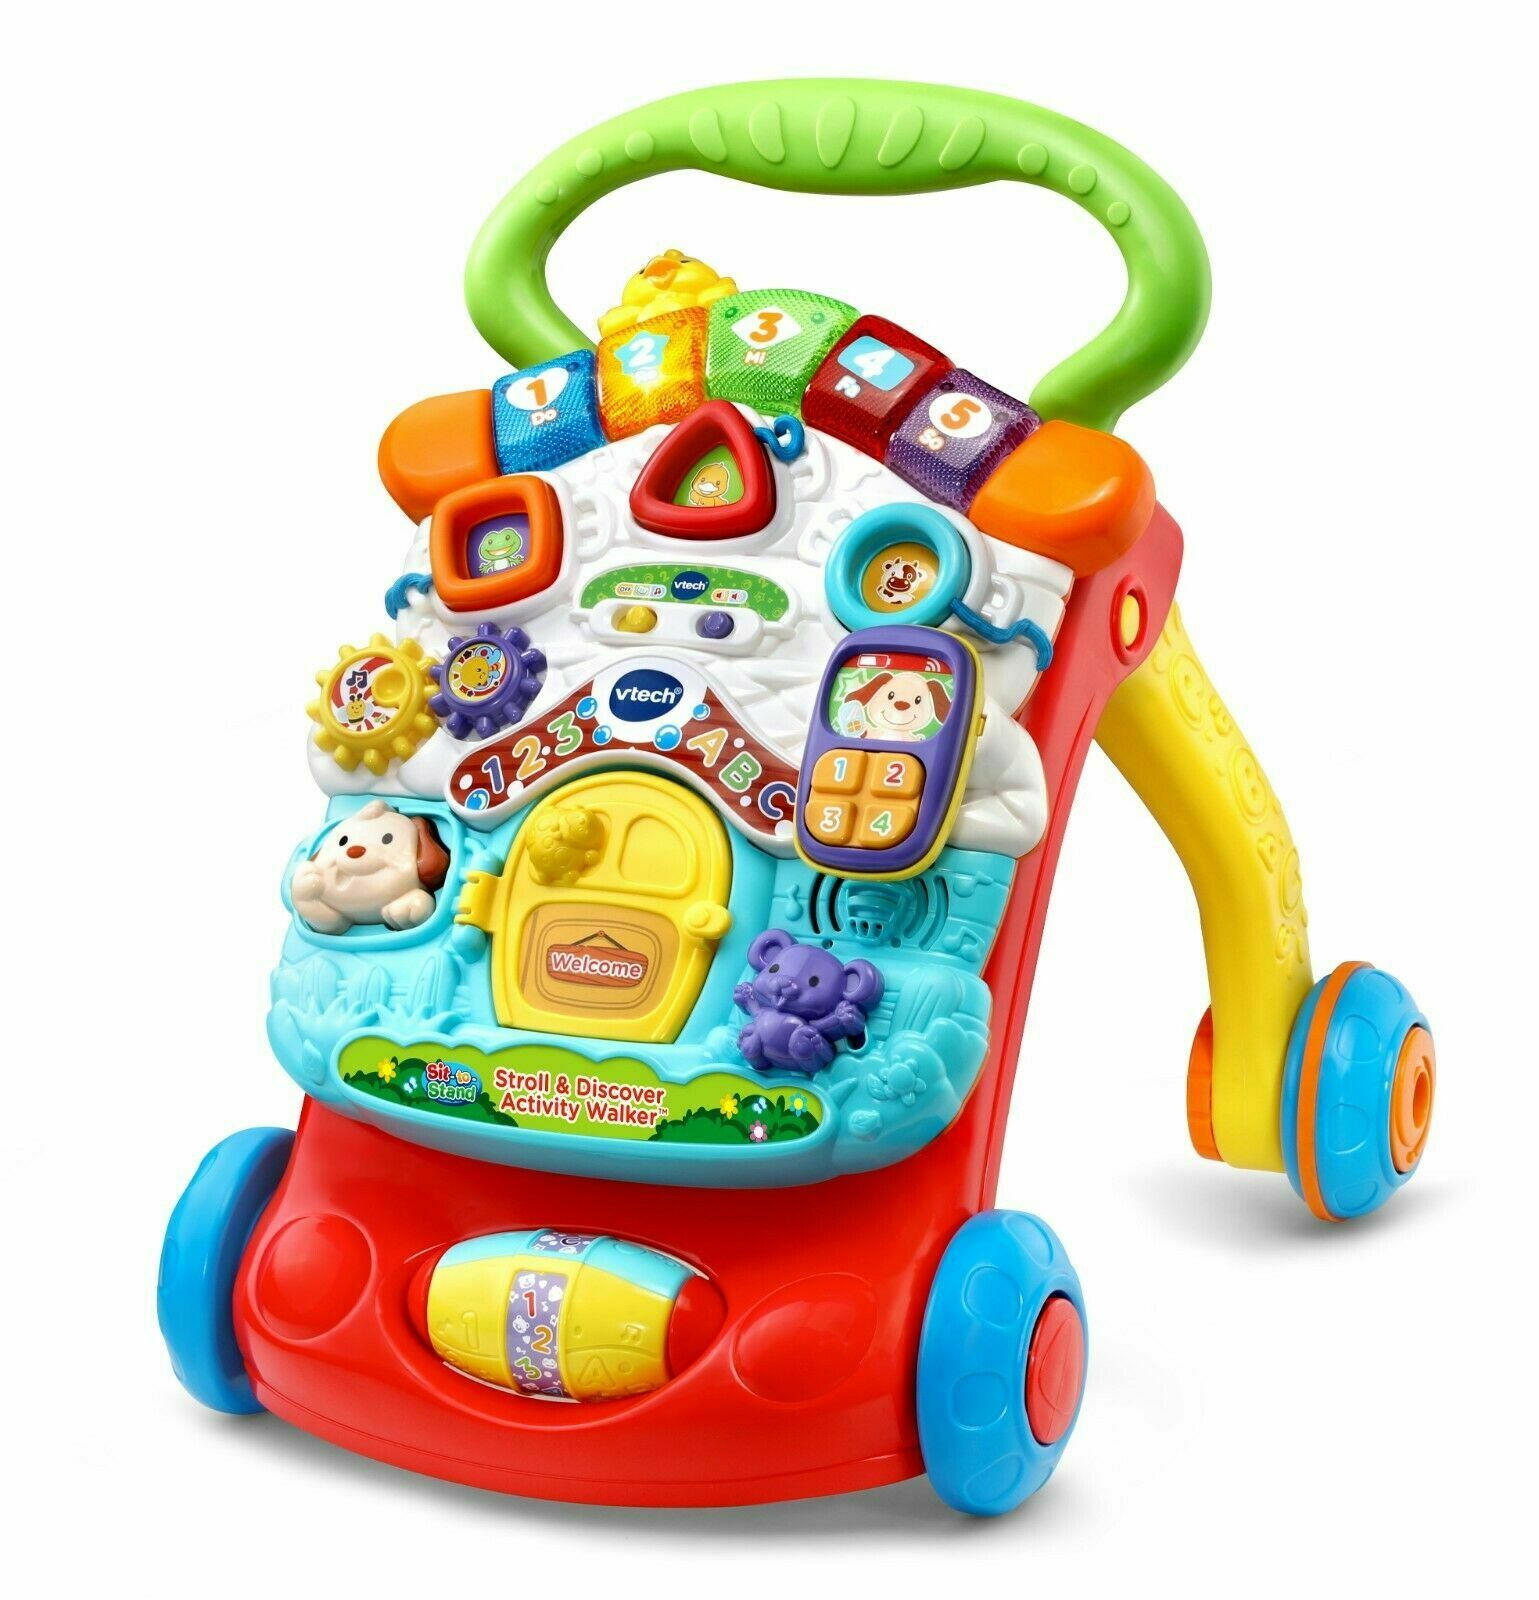 VTech Stroll & Discover Activity Walker 100+ songs, songs, songs, melodies, sounds and phrases 9493ab